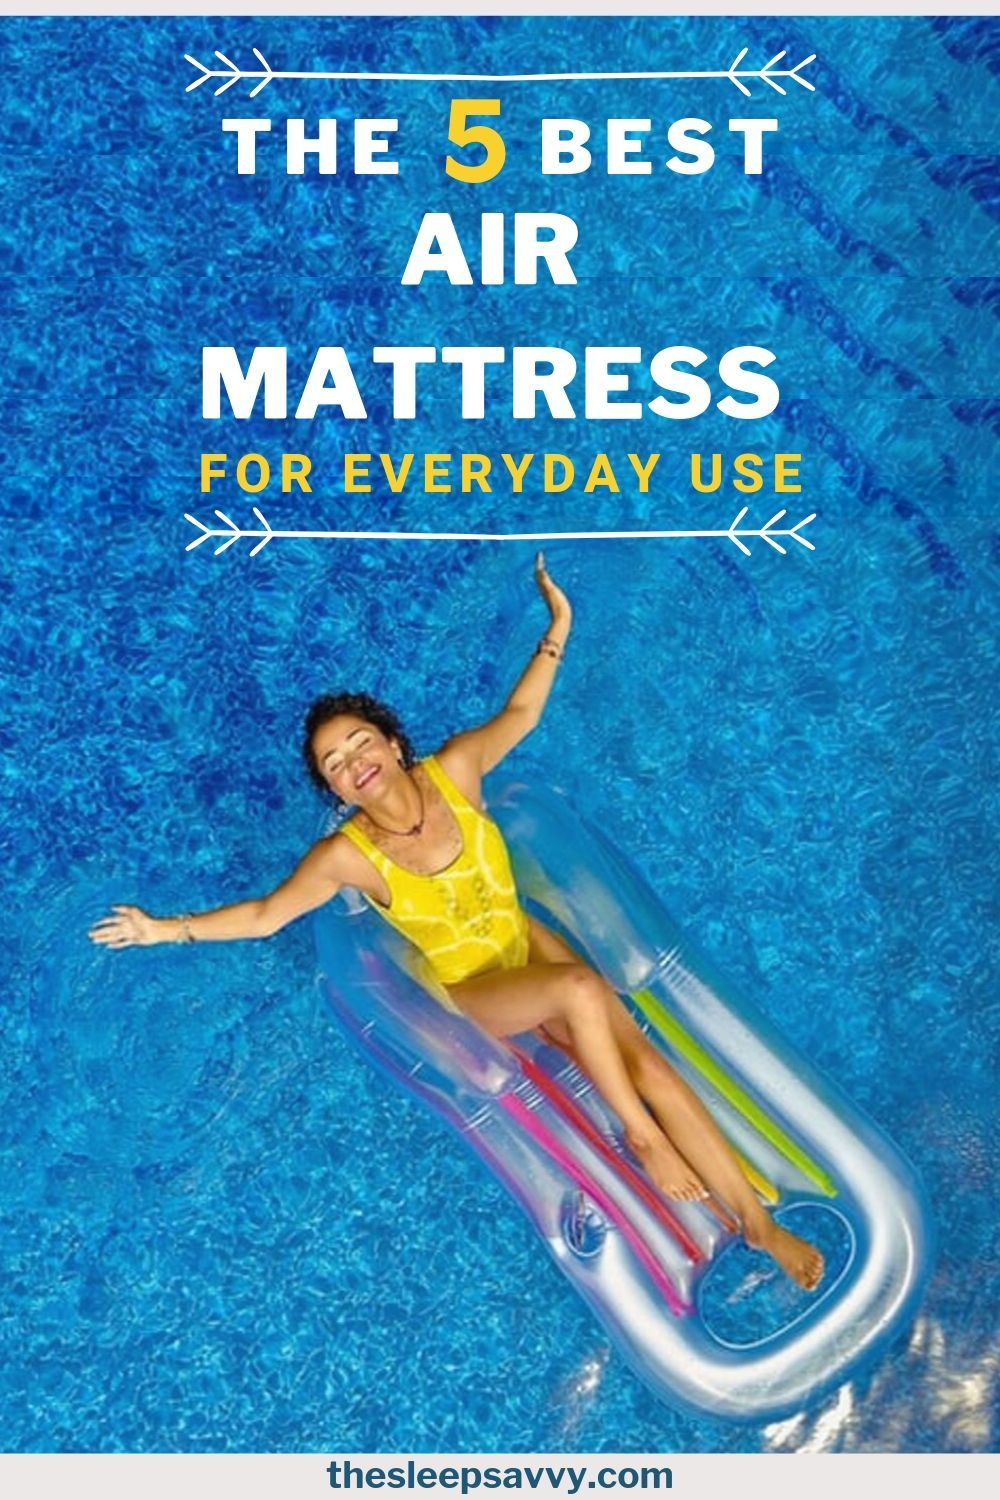 Best Air Mattress for Everyday Use The Top 5 Reviewed